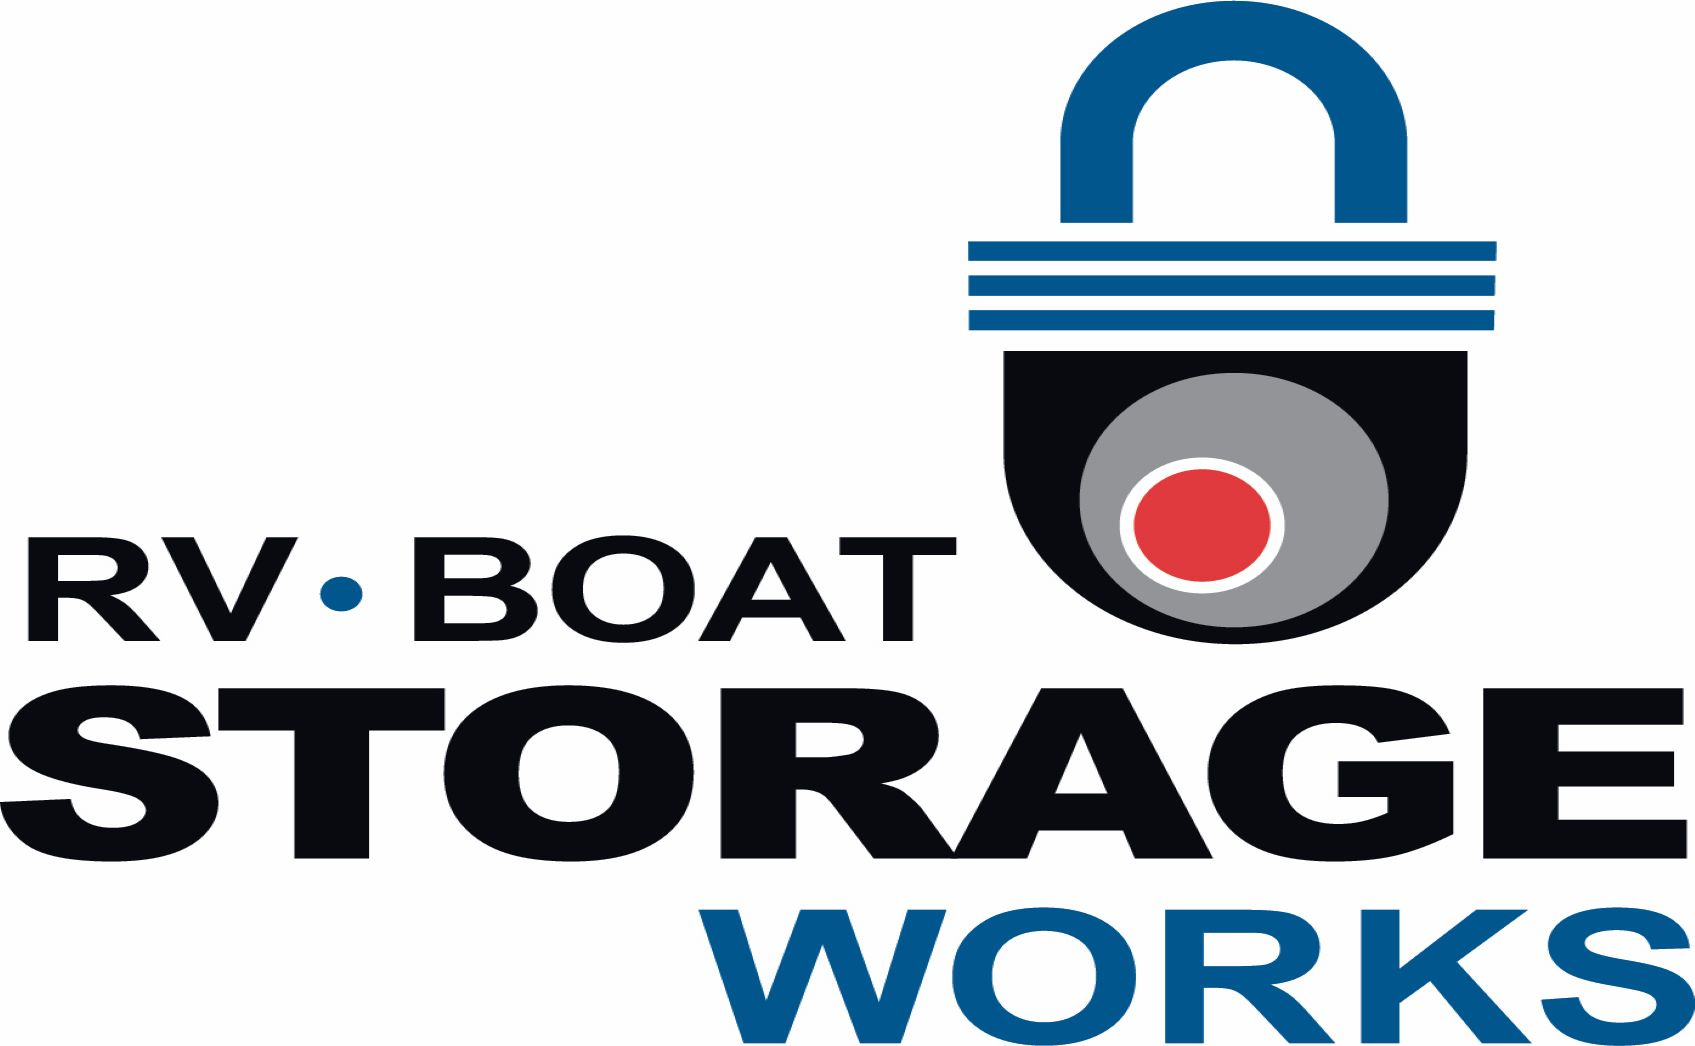 RV Boat Storage Works